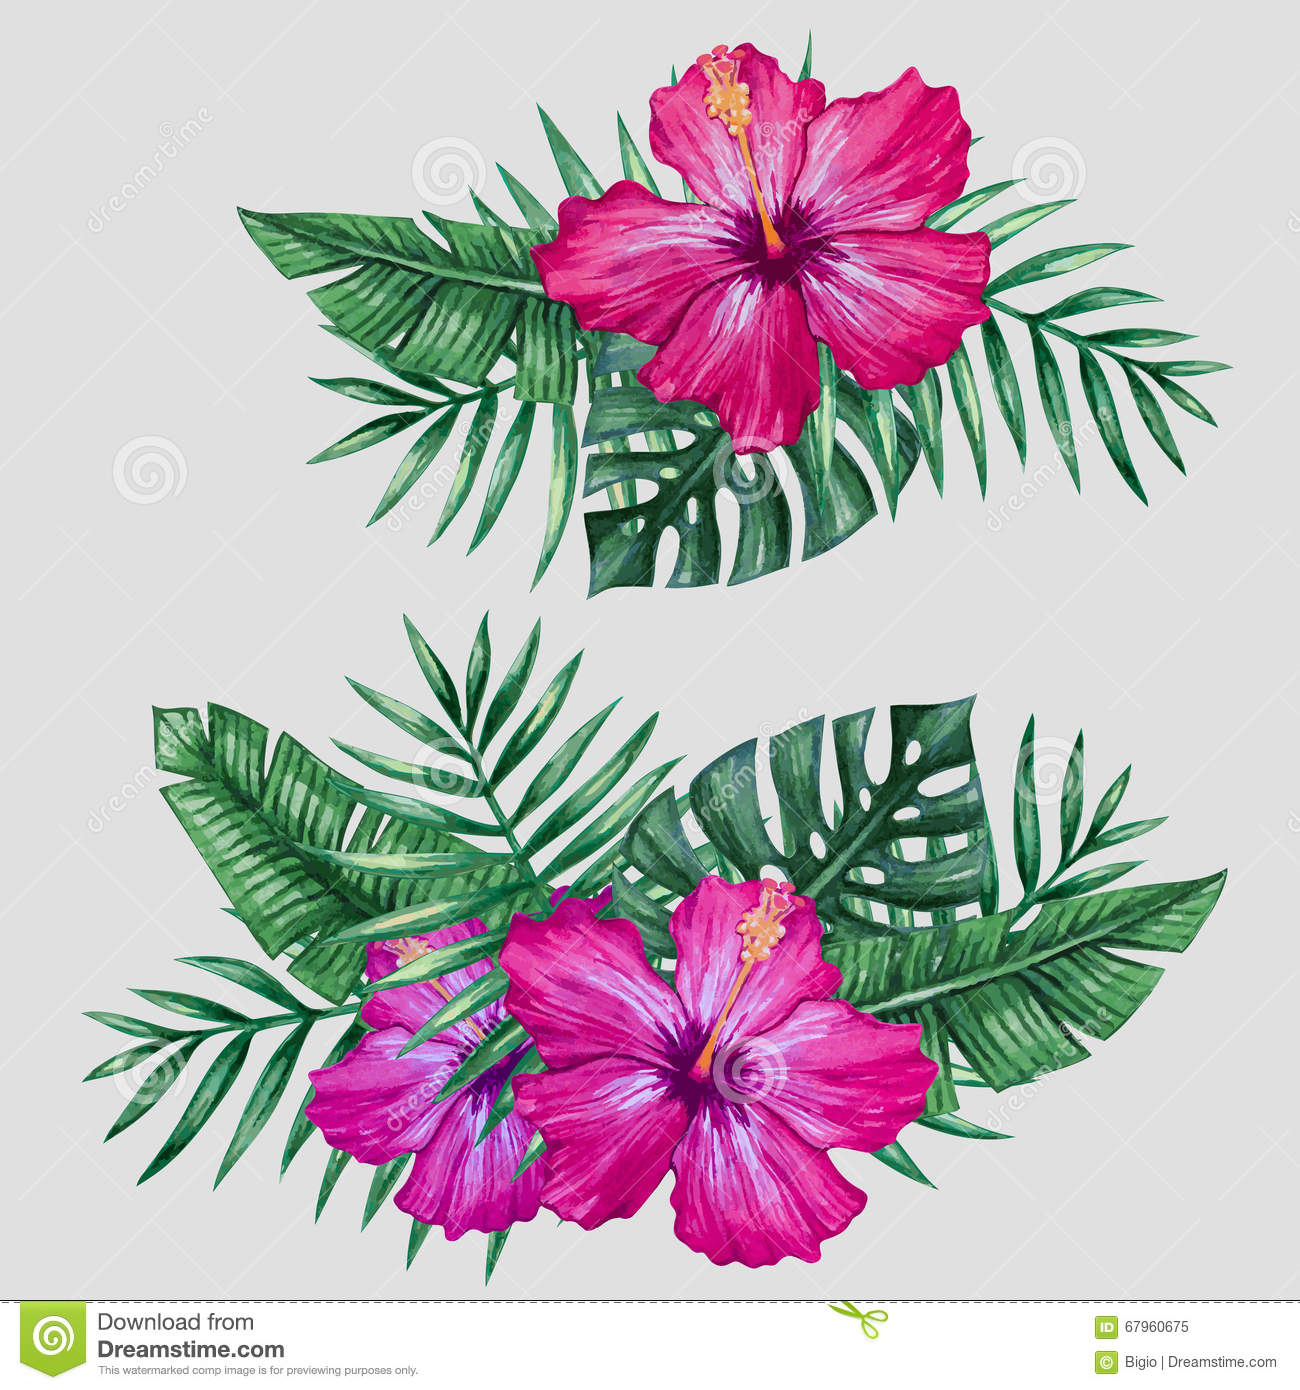 Watercolor Tropical Flowers And Palm Tree Leaves Stock Vector Illustration Of Nature Decoration 67960675 Finish the leaves and tropical flowers with smaller brush and black paint. dreamstime com